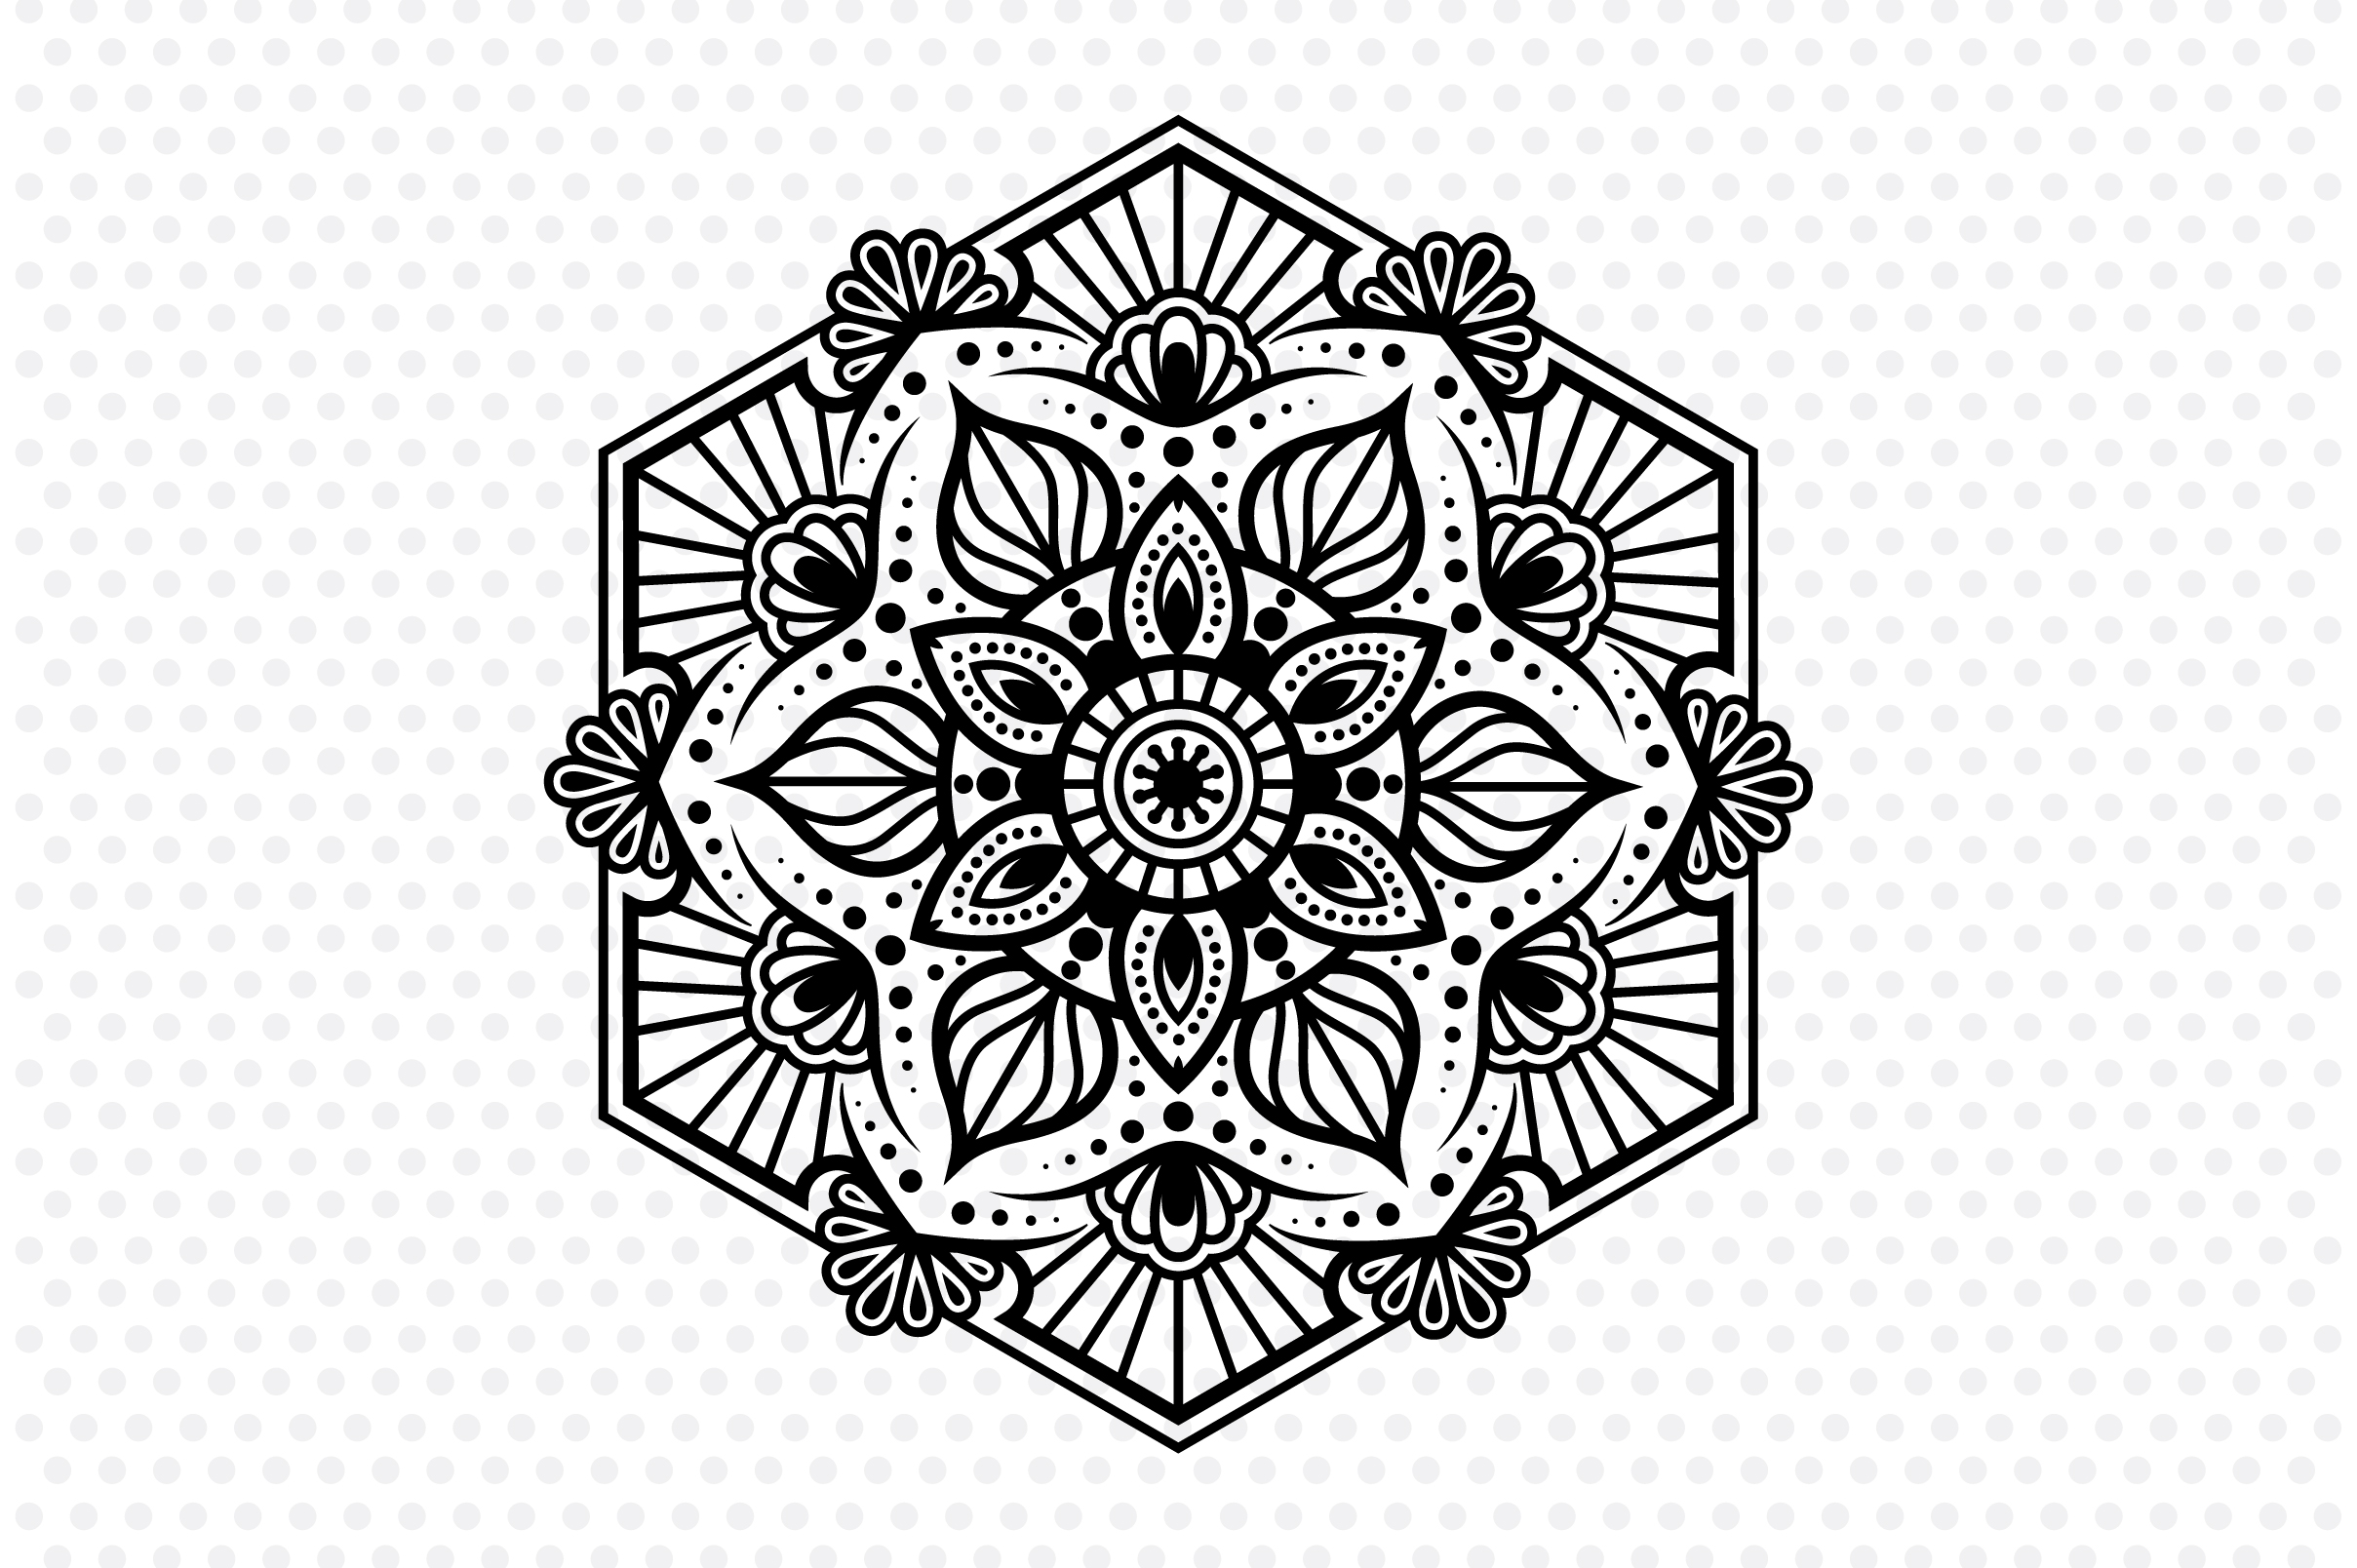 Download Free Hexa Mandala Graphic By Izacuite Creative Fabrica for Cricut Explore, Silhouette and other cutting machines.